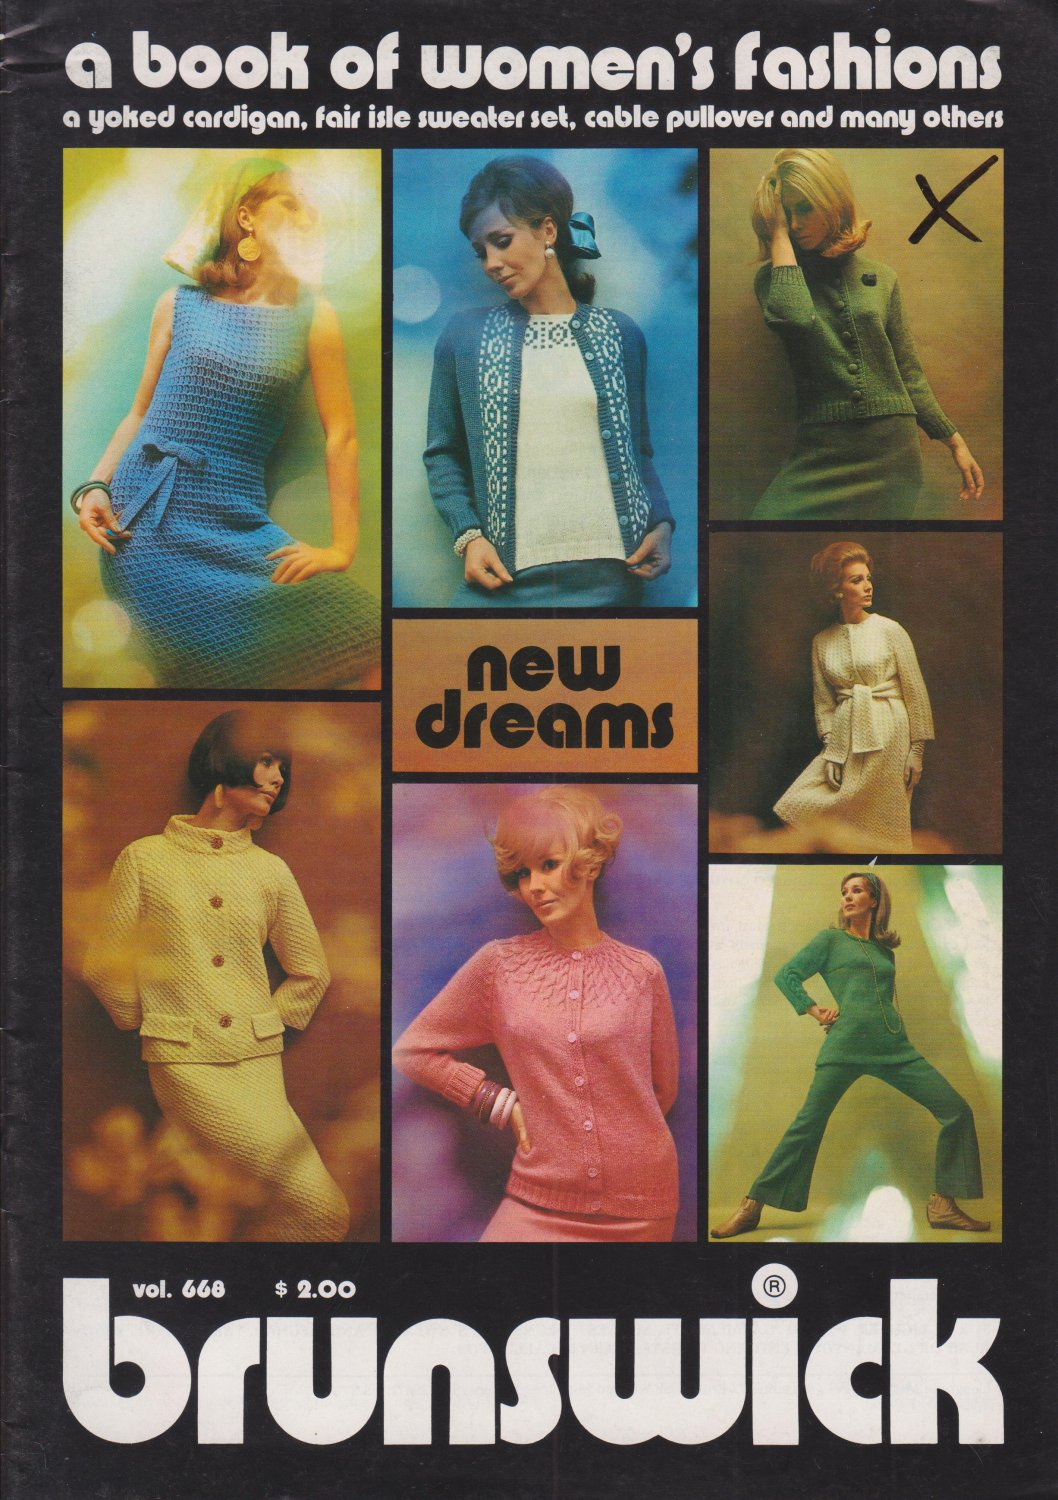 Brunswick Vol 668 A Book Of Women's Fashions 1976 Knitting Pattern Booklet